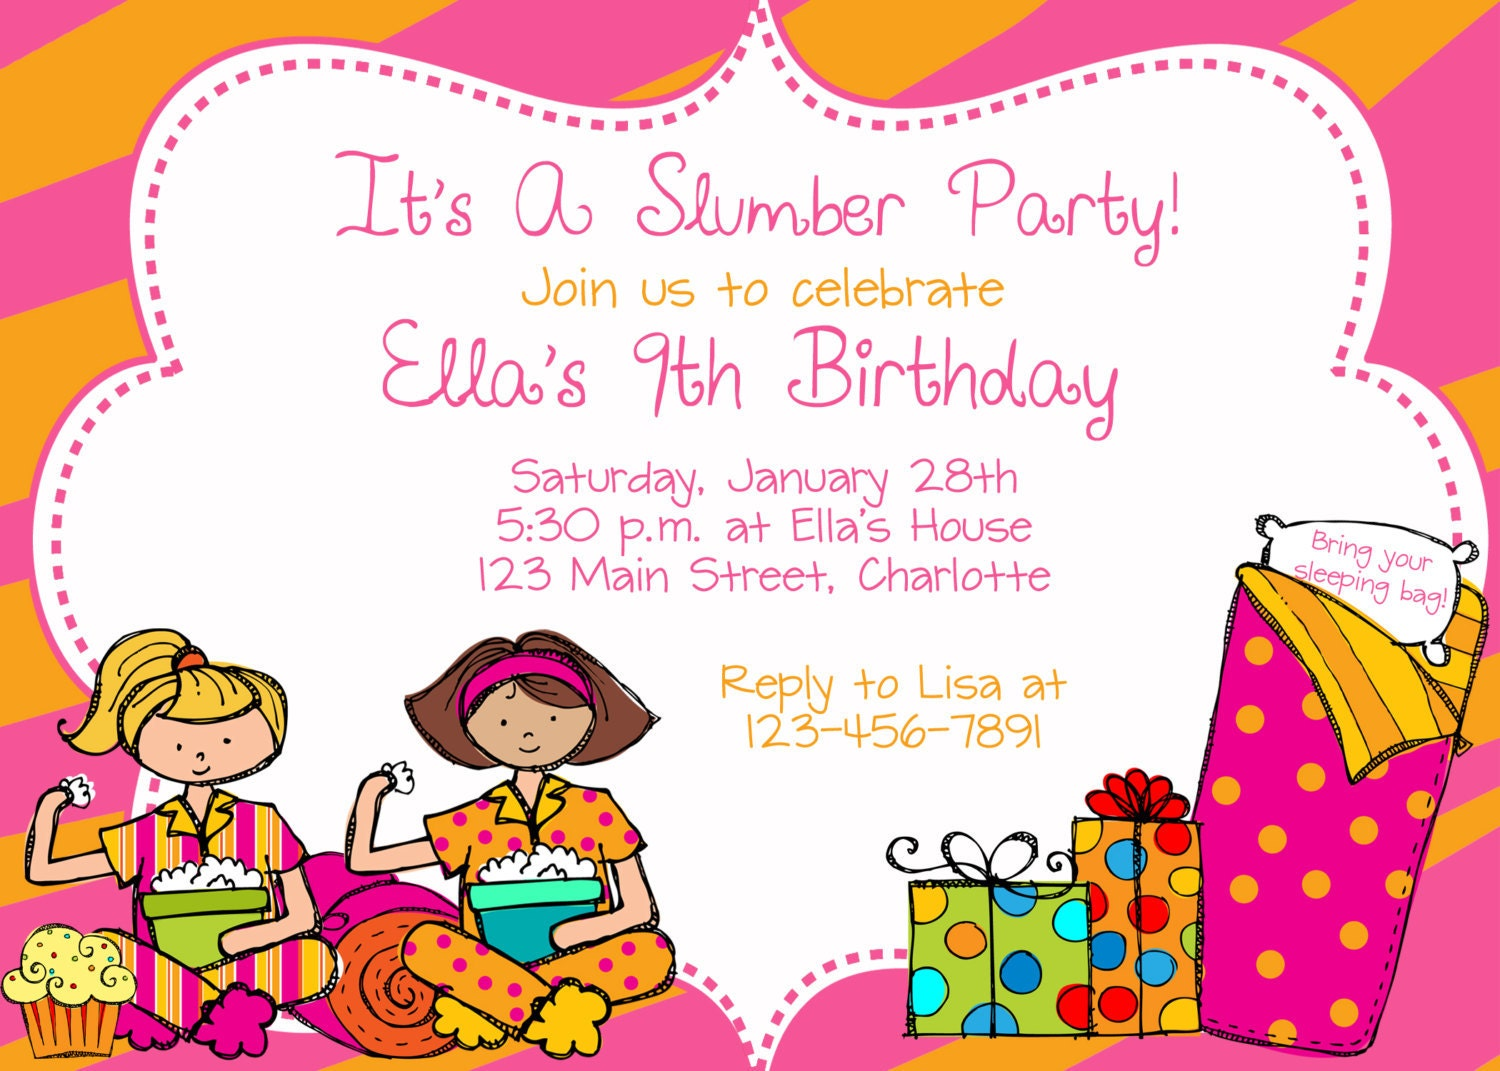 Slumber party birthday party invitation slumber party zoom stopboris Image collections